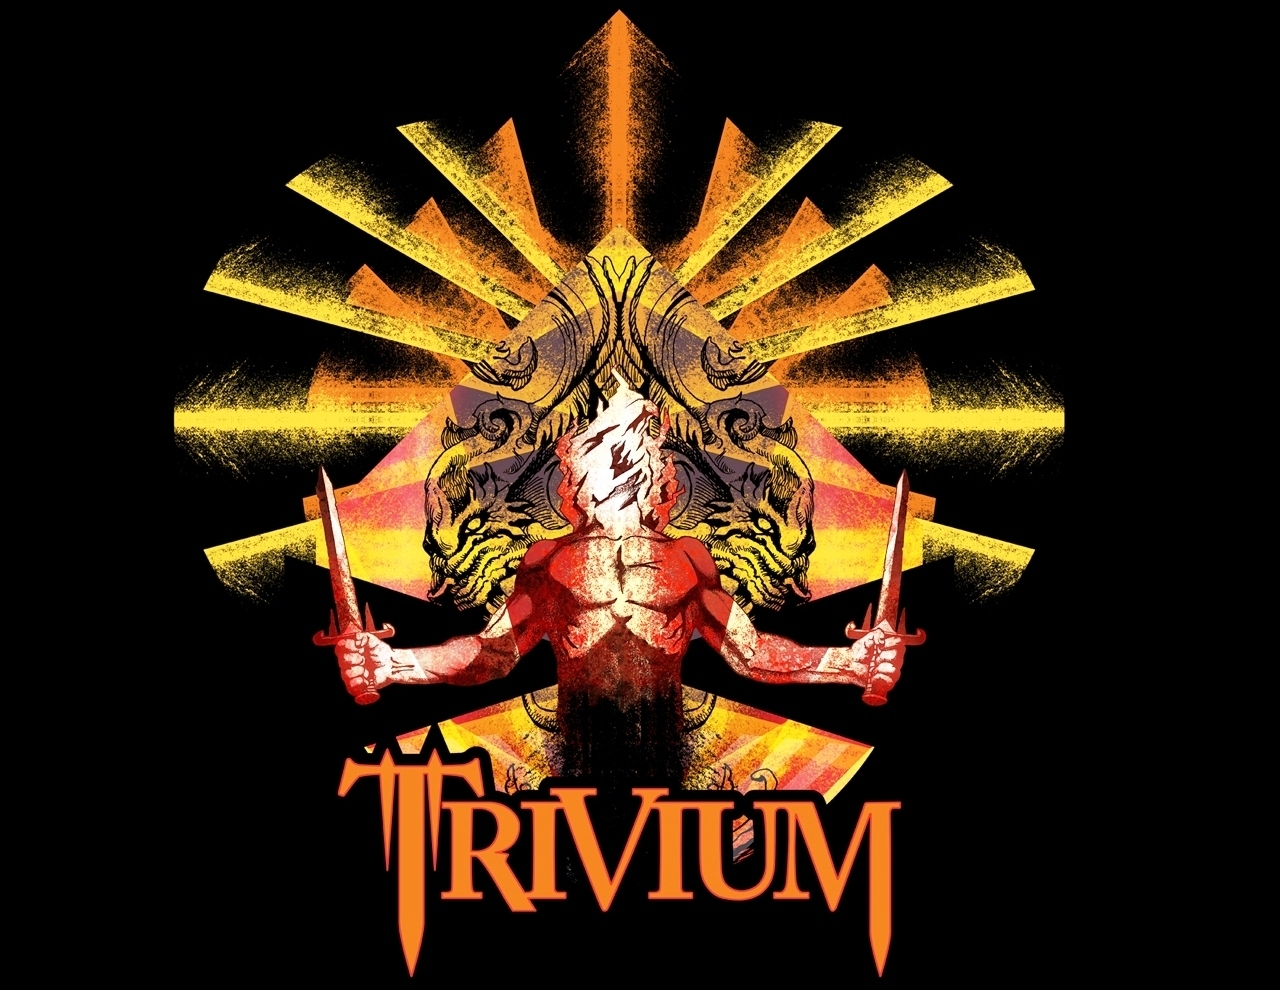 All Anime Wallpaper Hd Trivium Images Trivium Hd Wallpaper And Background Photos